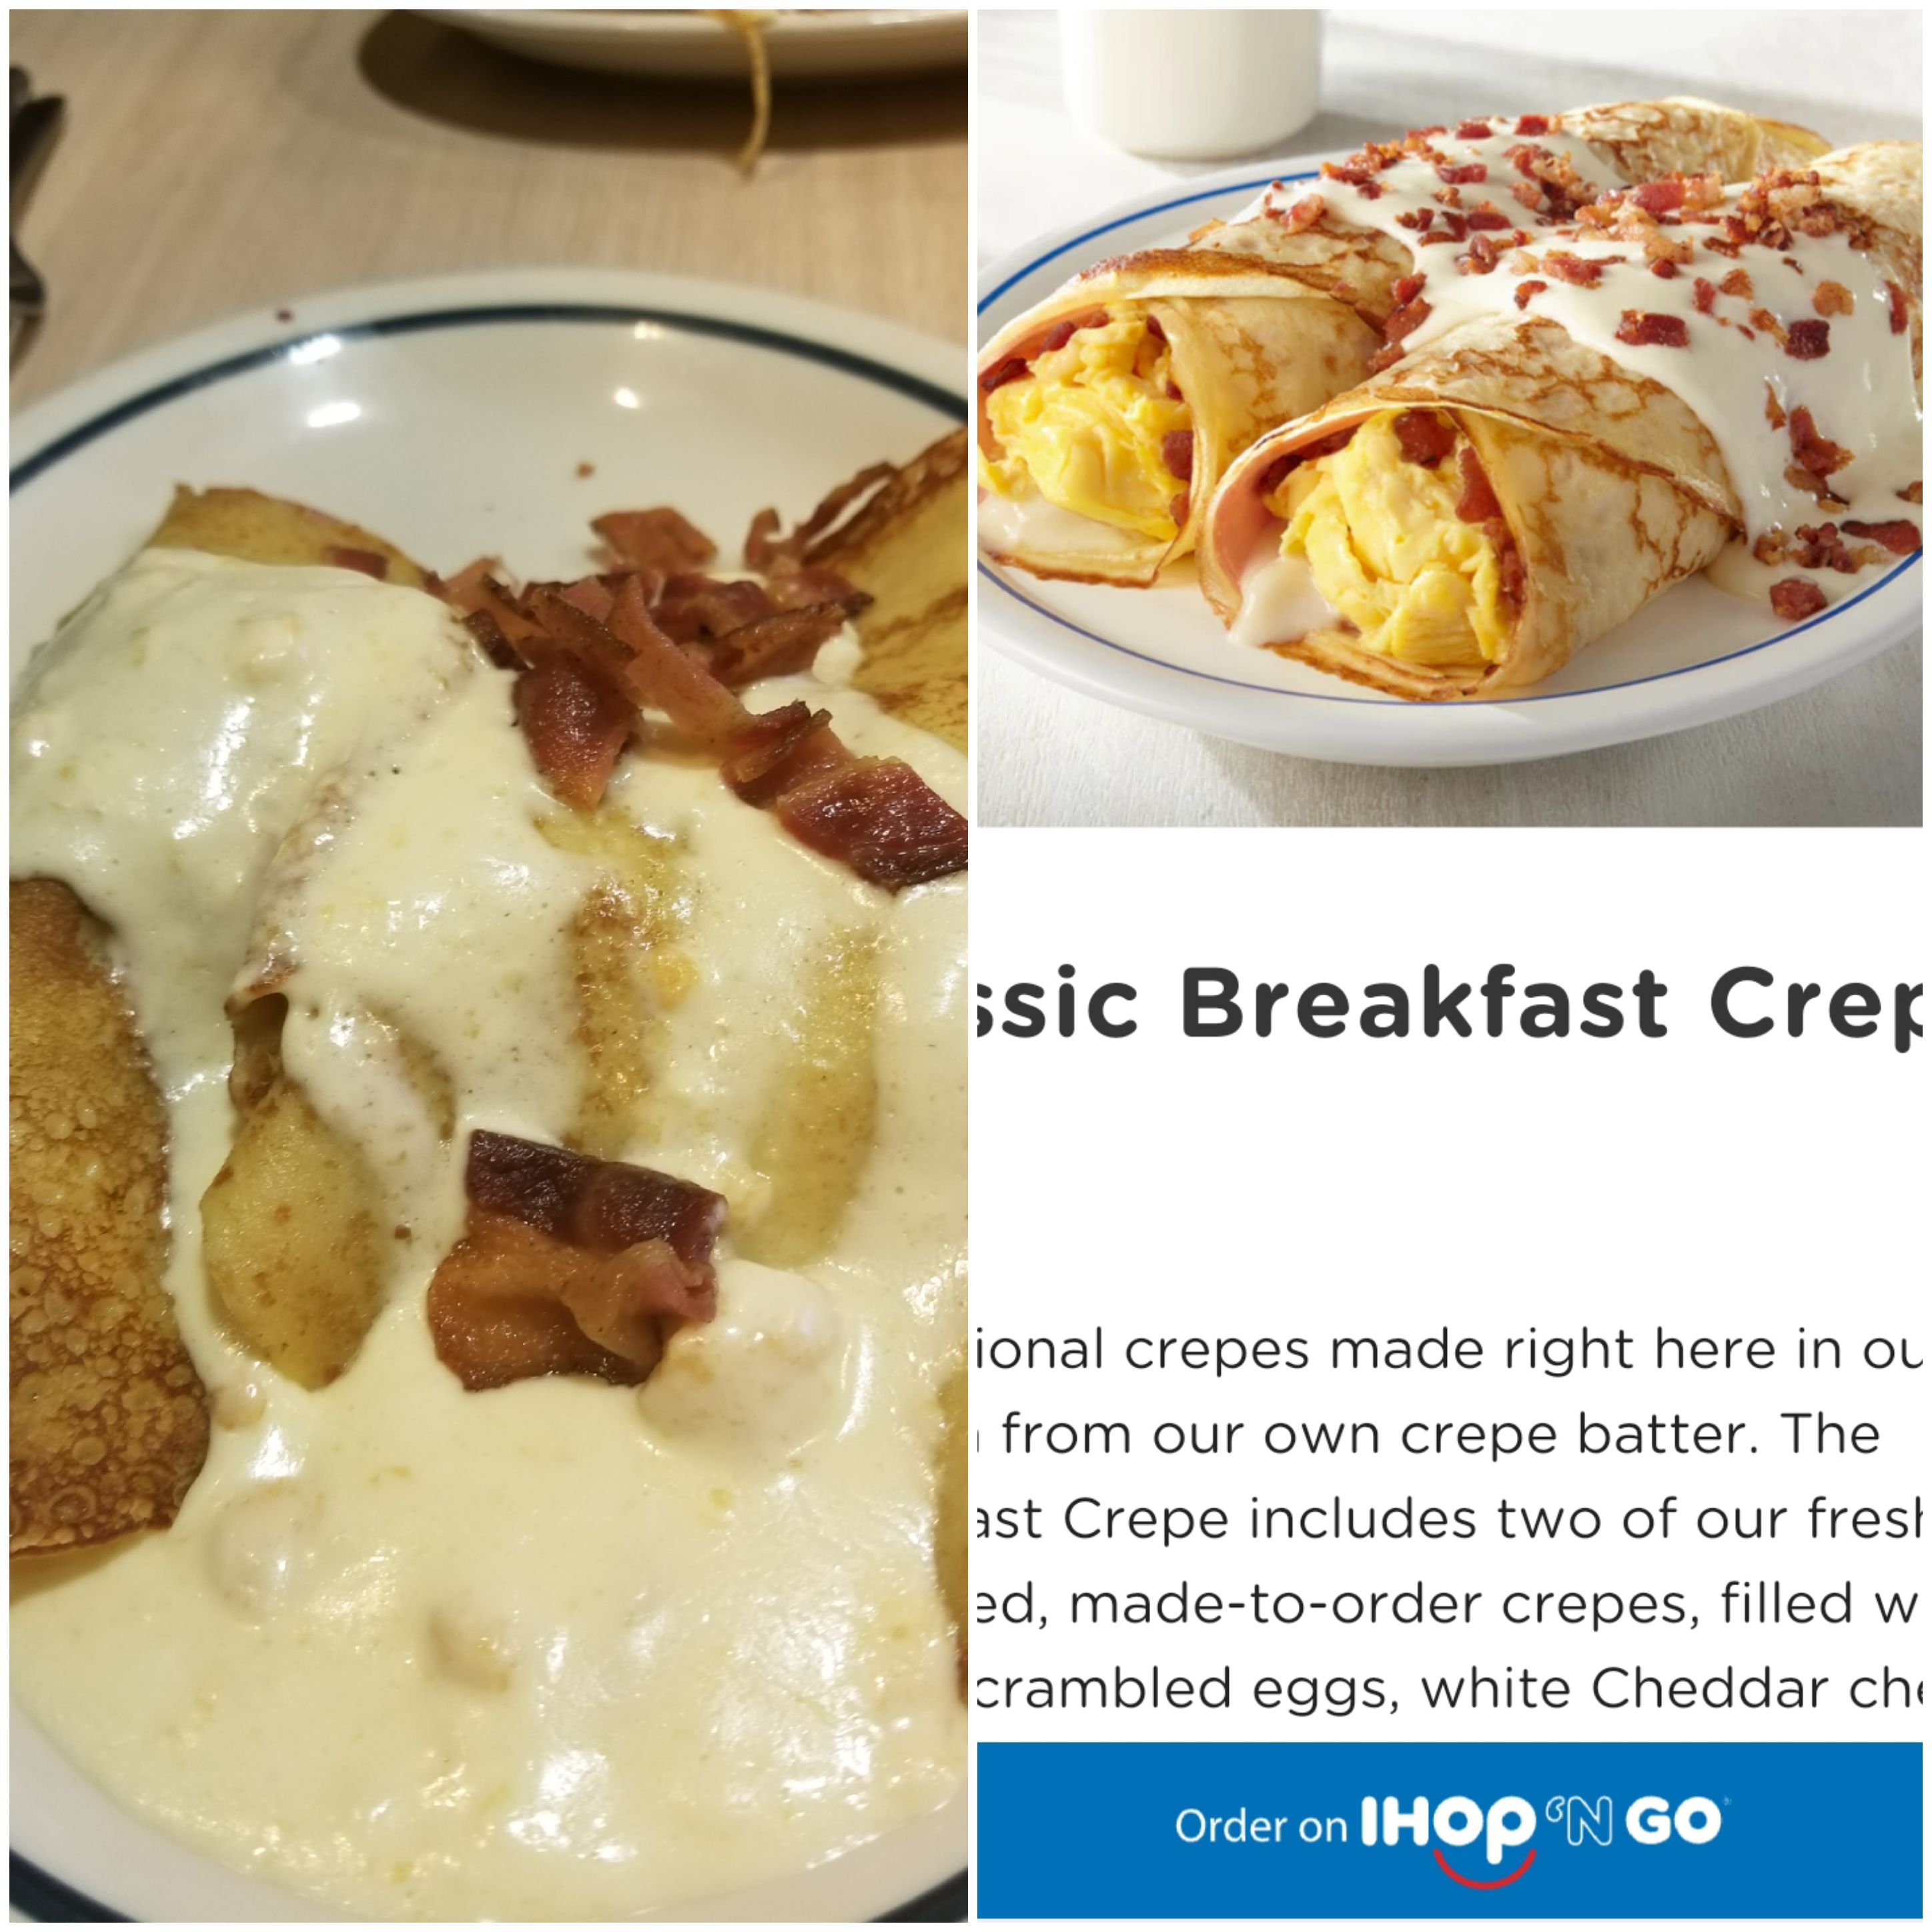 ihop breakfast crepes tasted about as good as they look